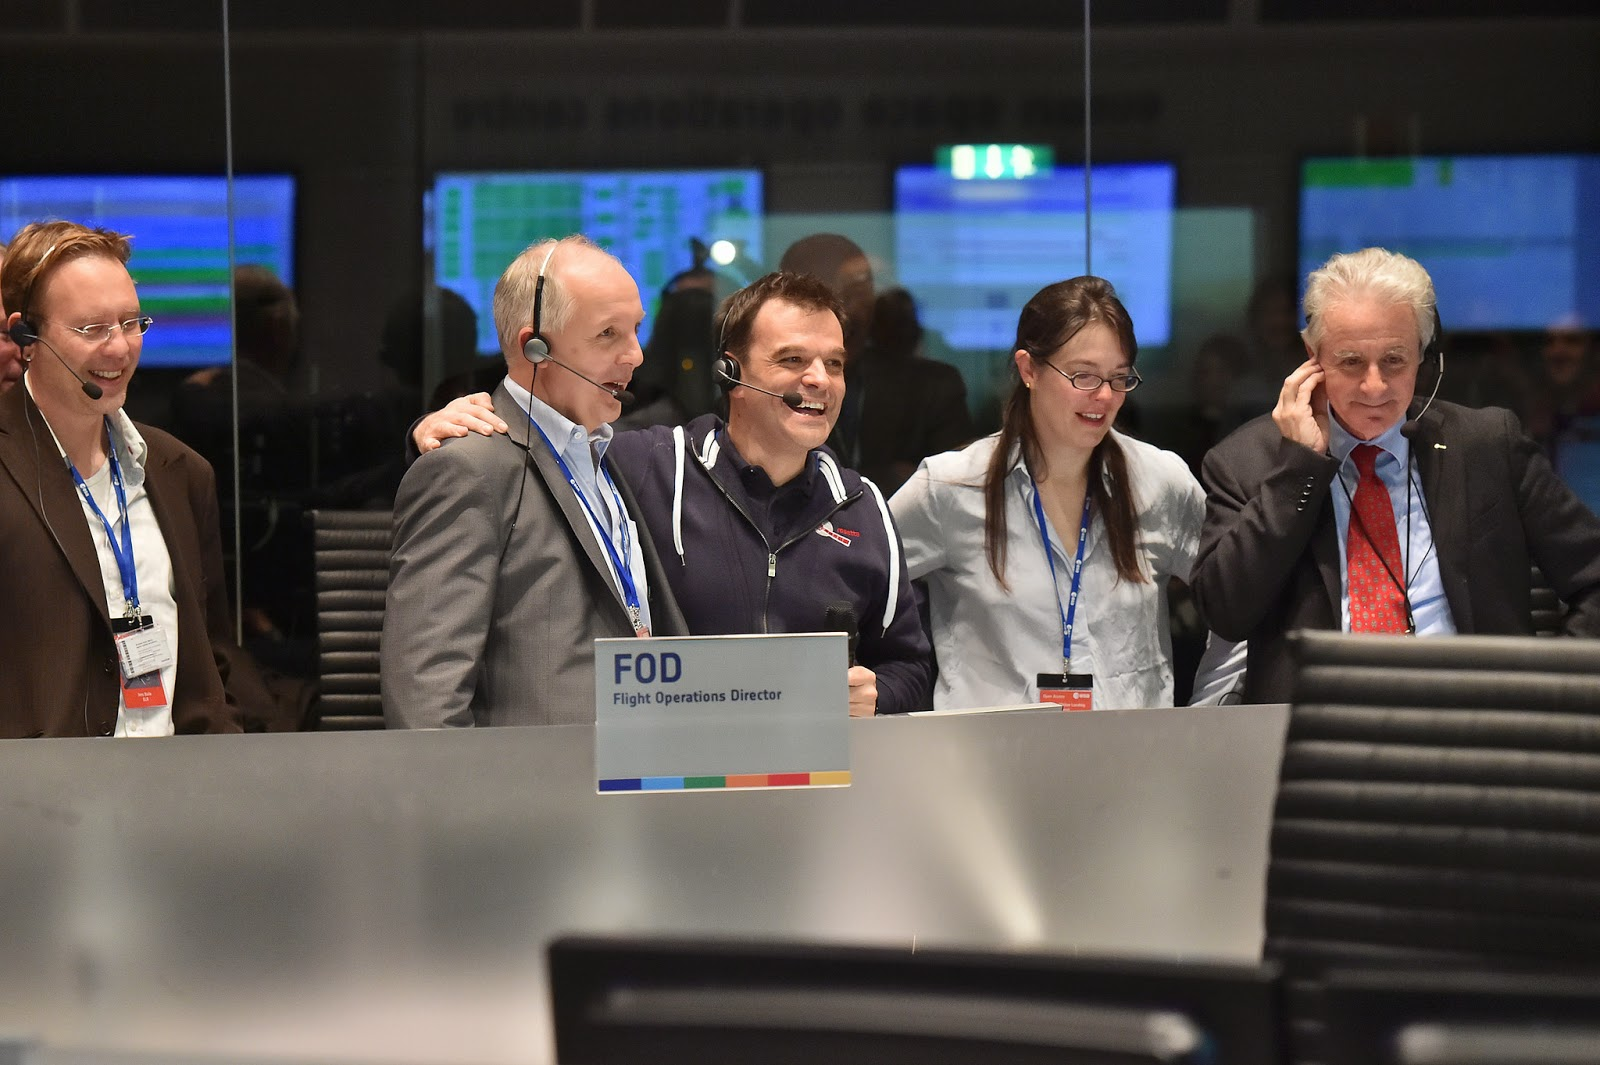 Astronomy and Space News - Astro Watch: Philae Has Landed ...